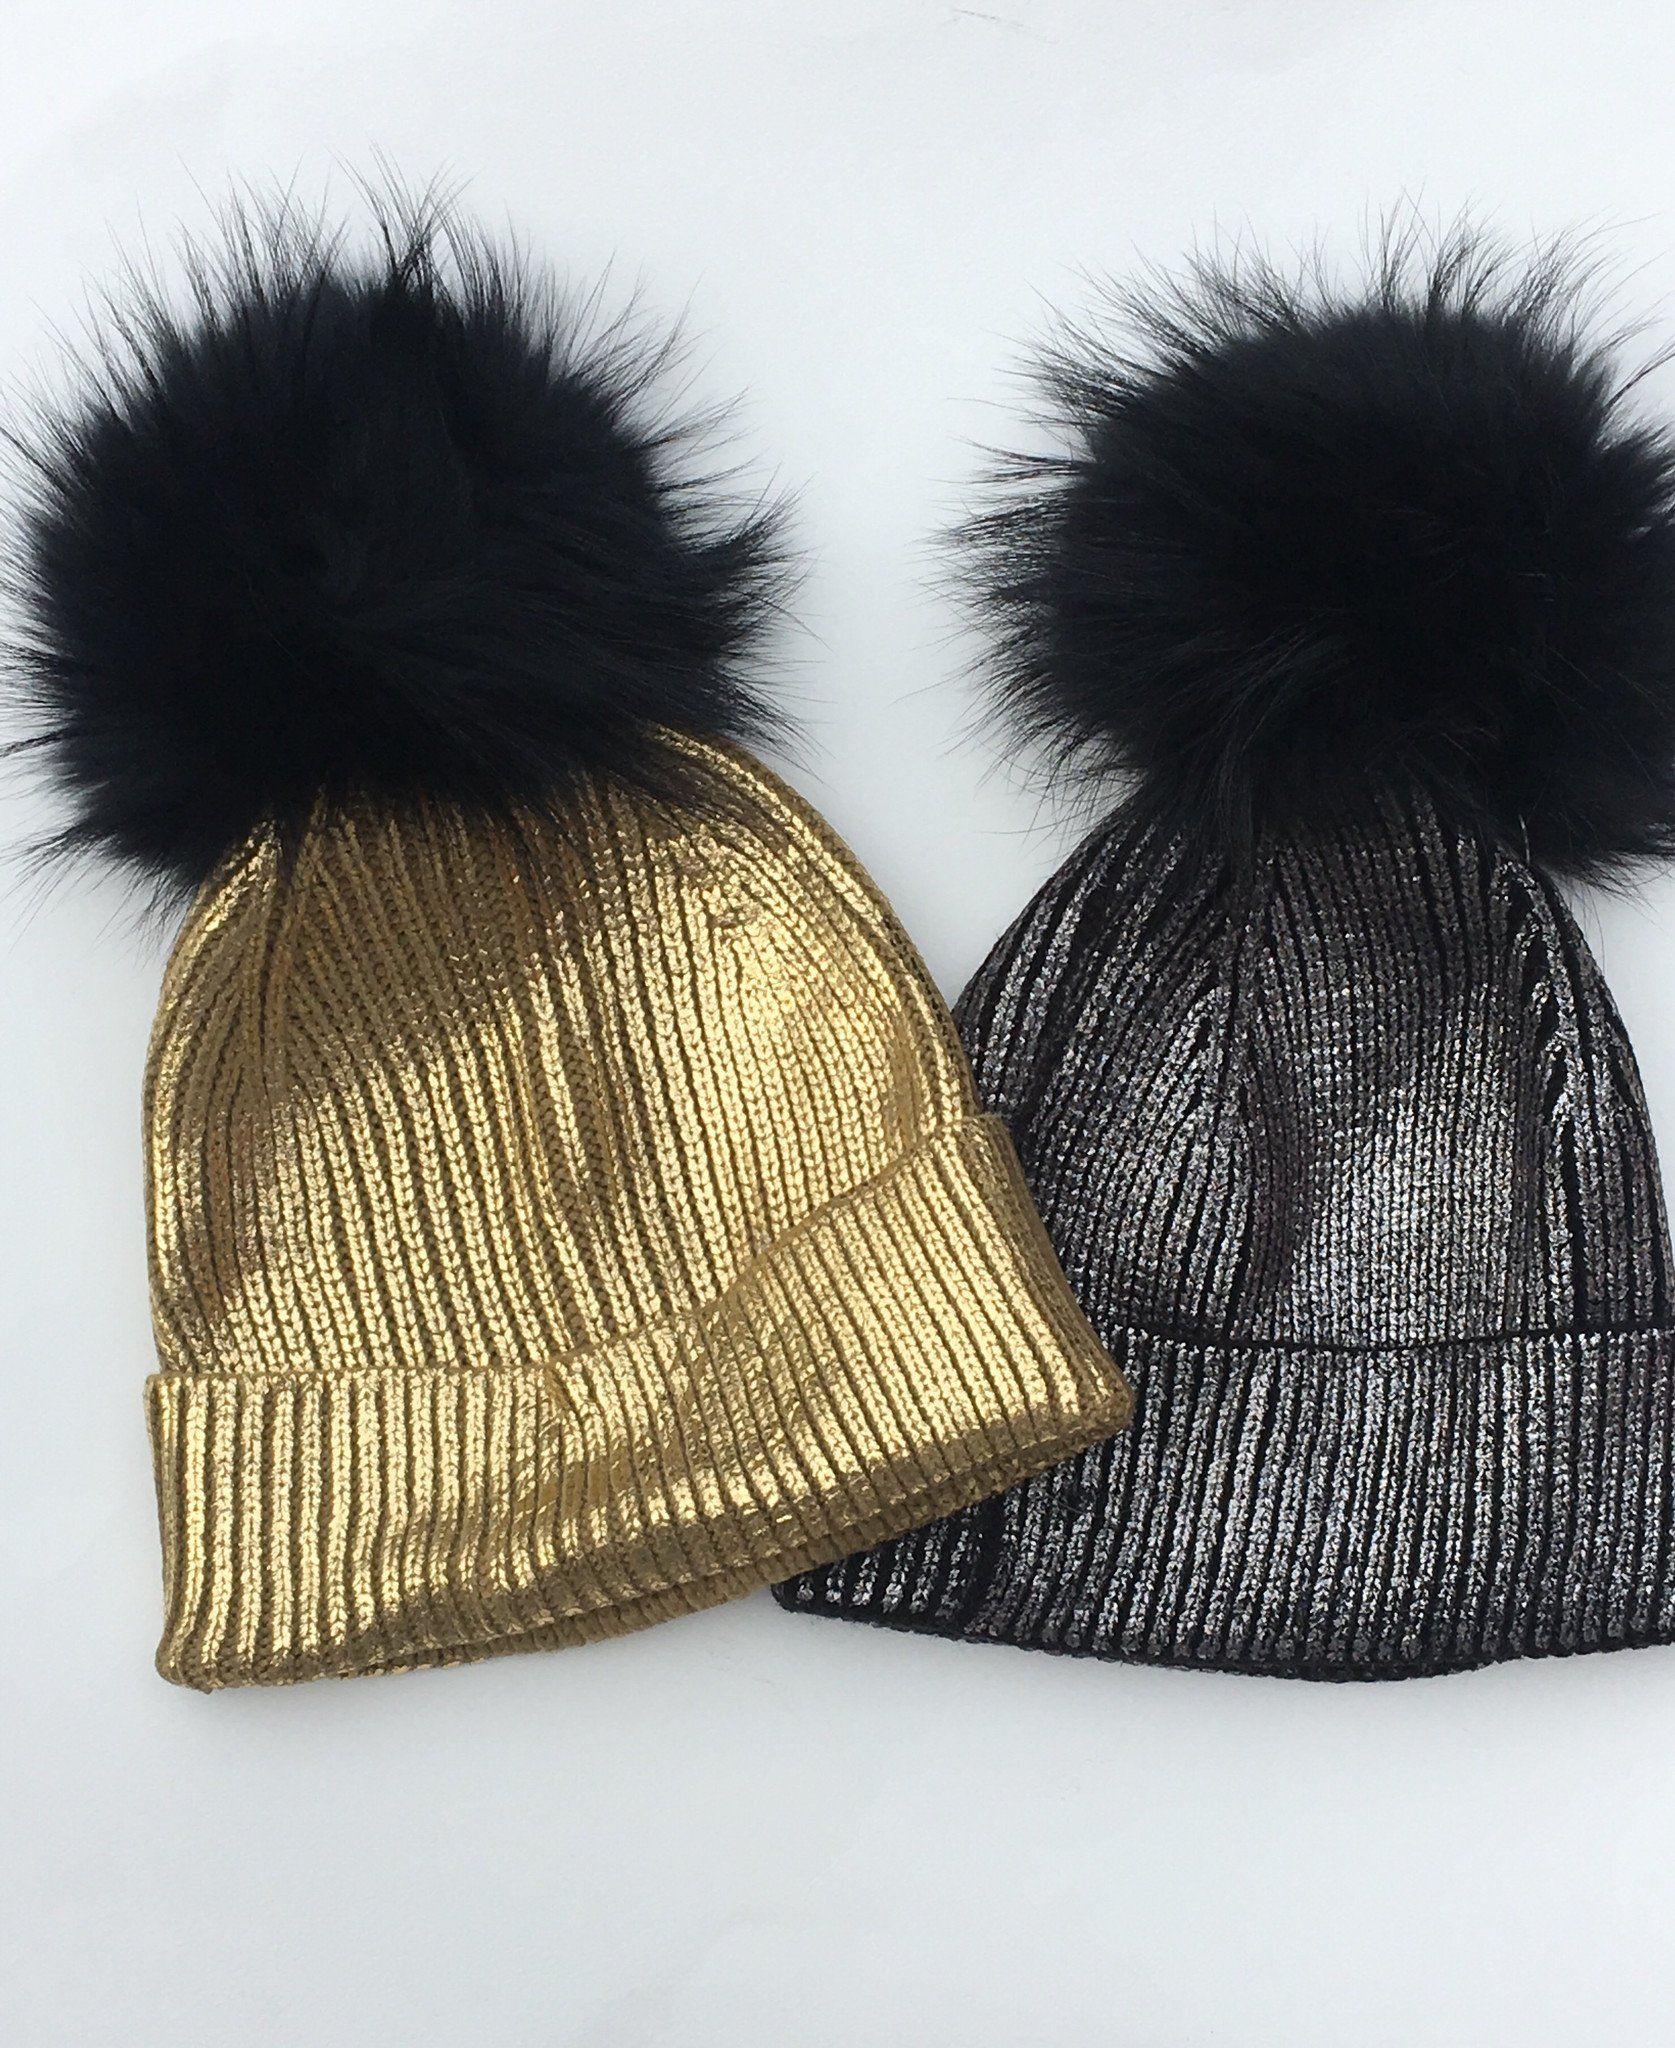 3d4a5397296f31 Pink Pineapple EXCLUSIVE - Gold Foil hats with Black FUR poms!!!! Being  cool was never so Cool!